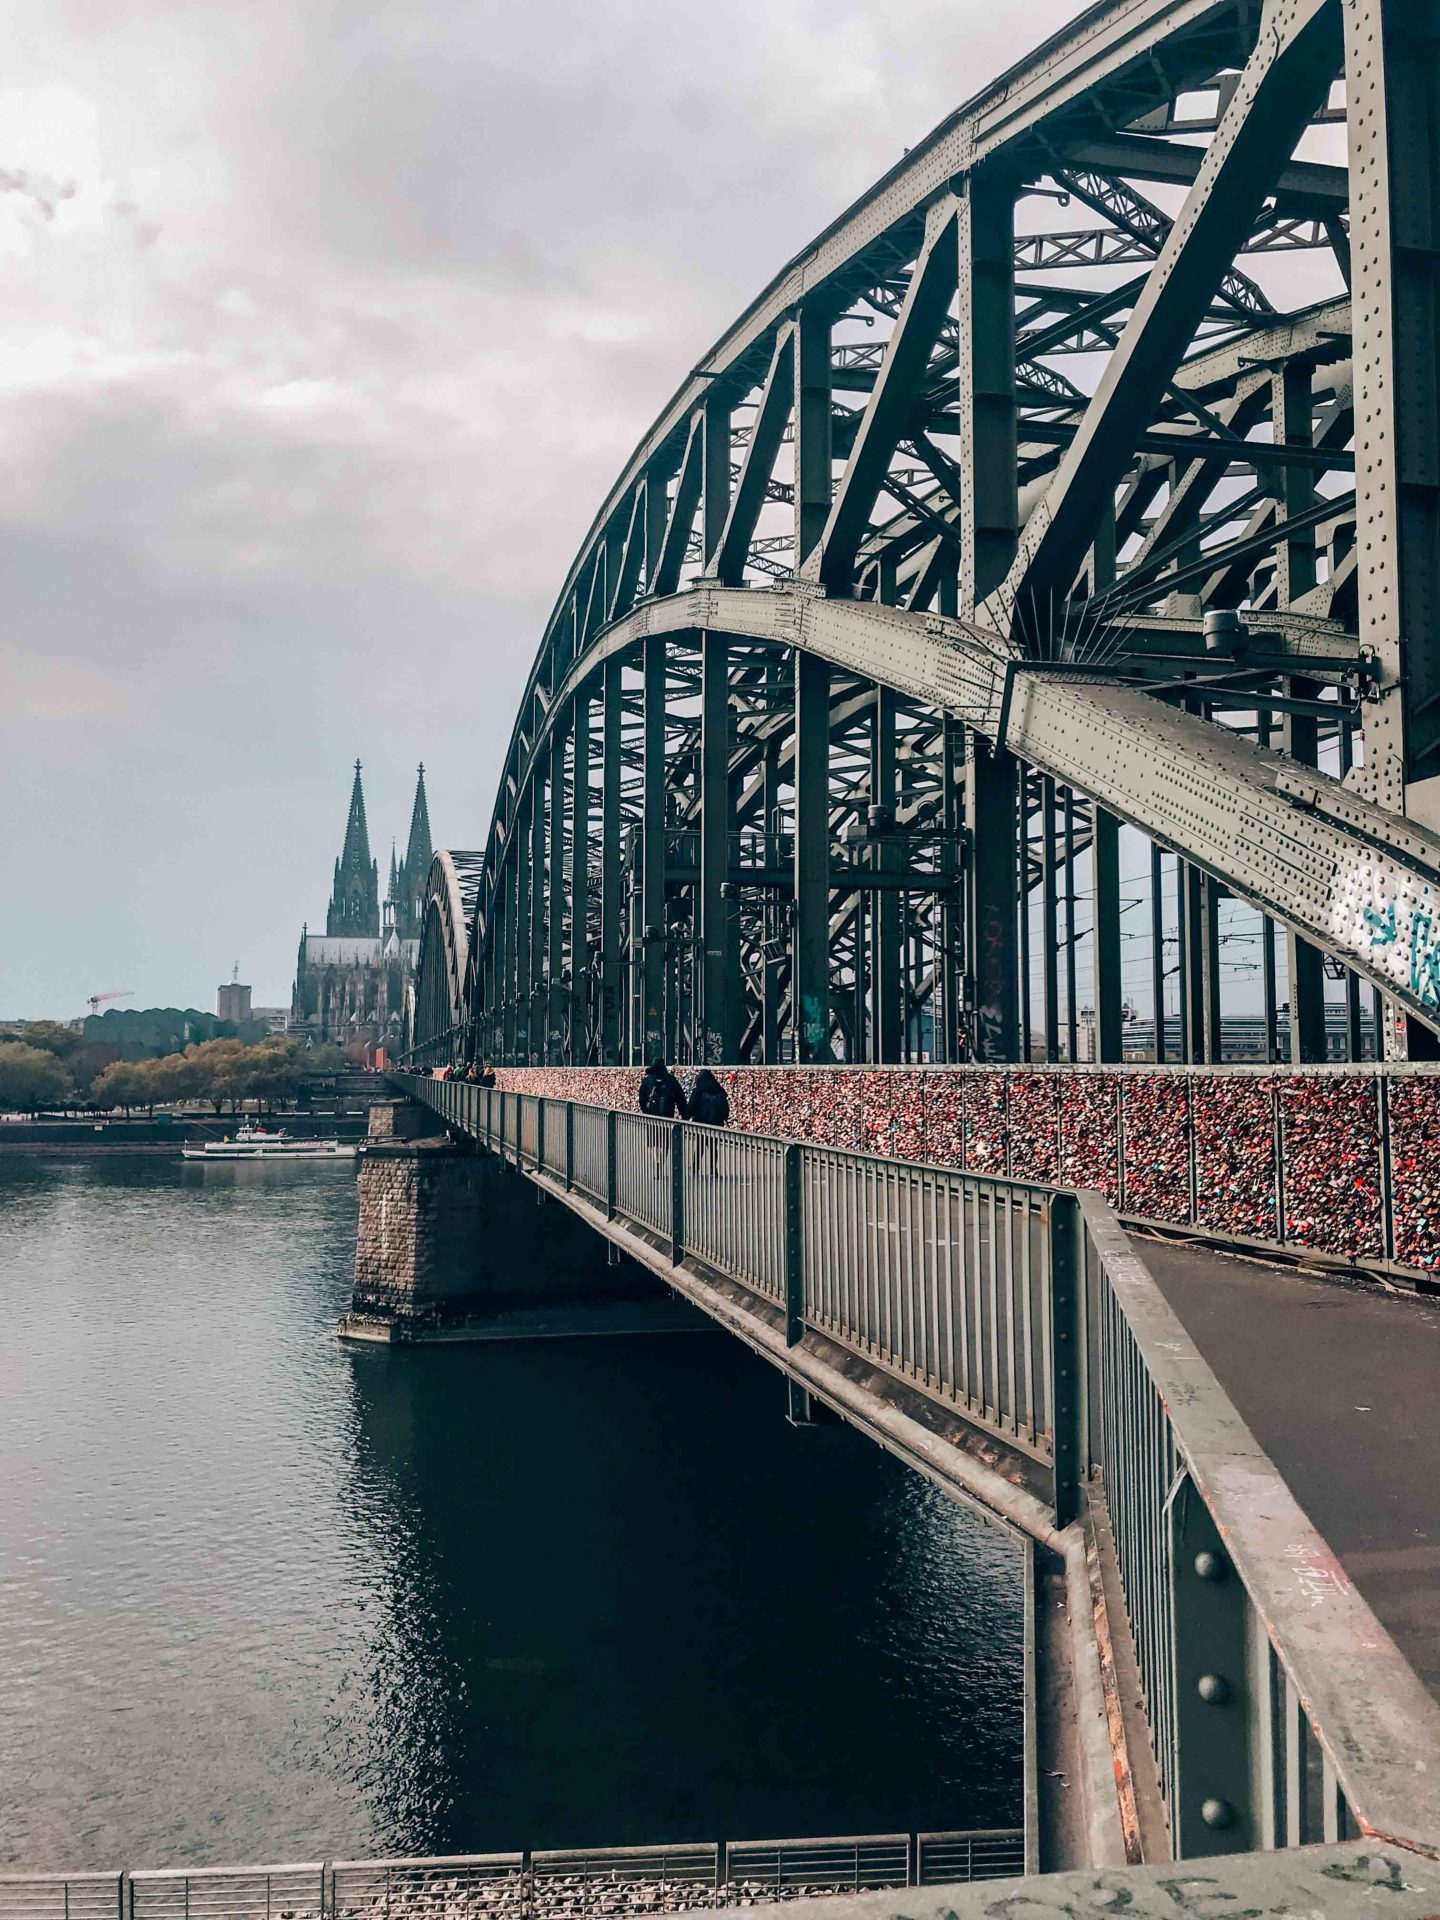 The Hohenzollernbrücke of Cologne